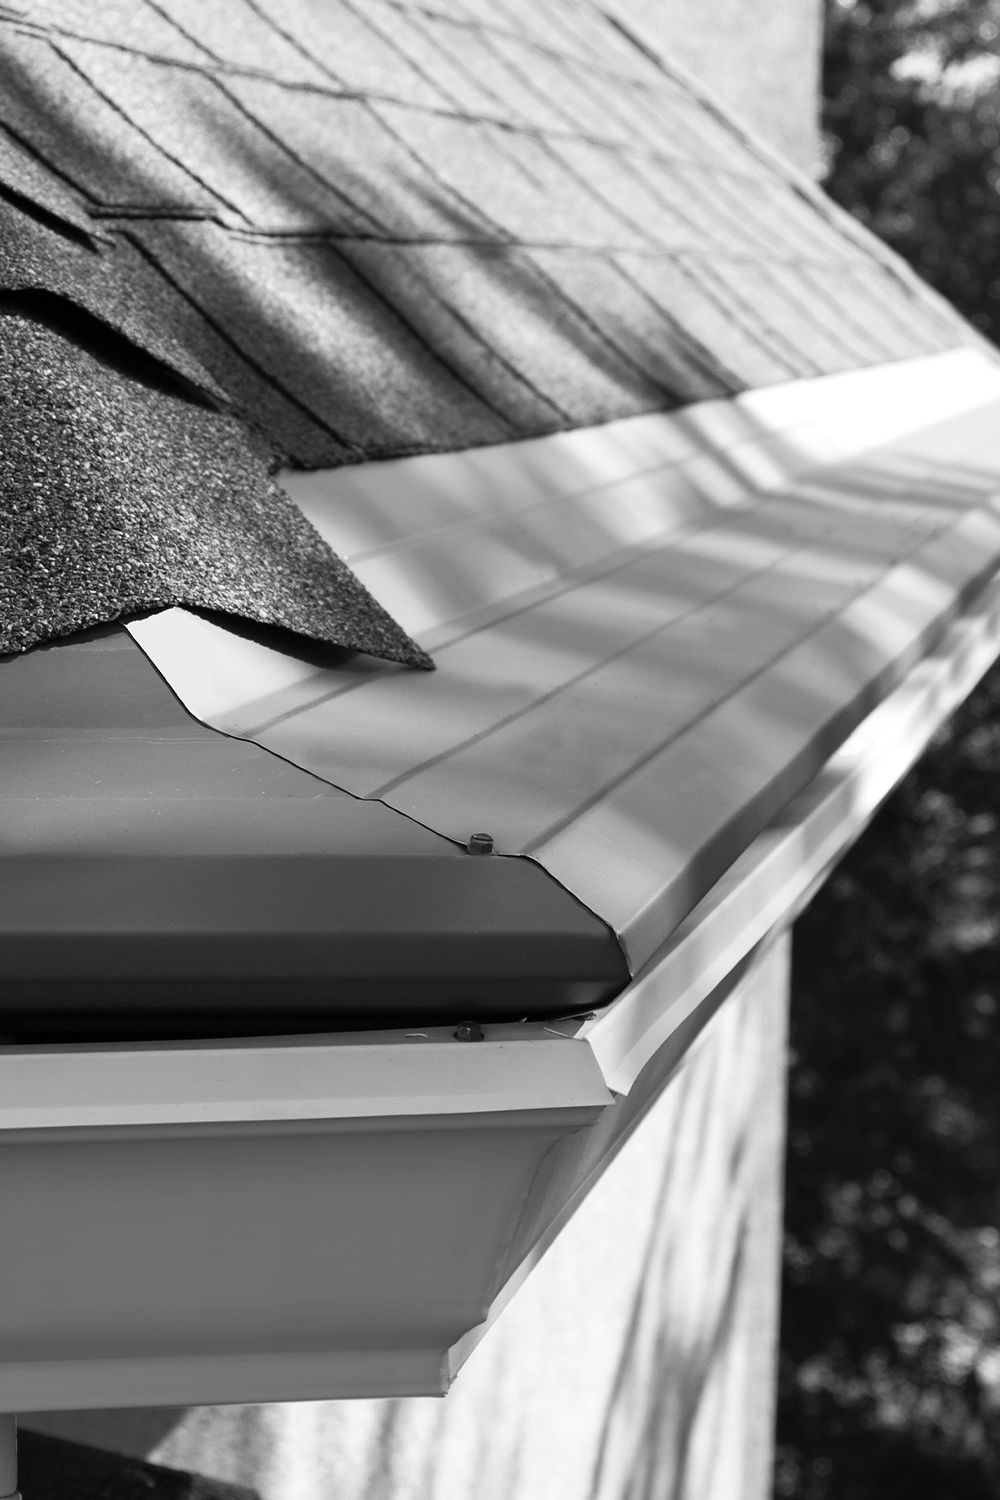 Truguard Gutter Protection In 2020 Gutter Protection Exterior Renovation Remodeling Renovation